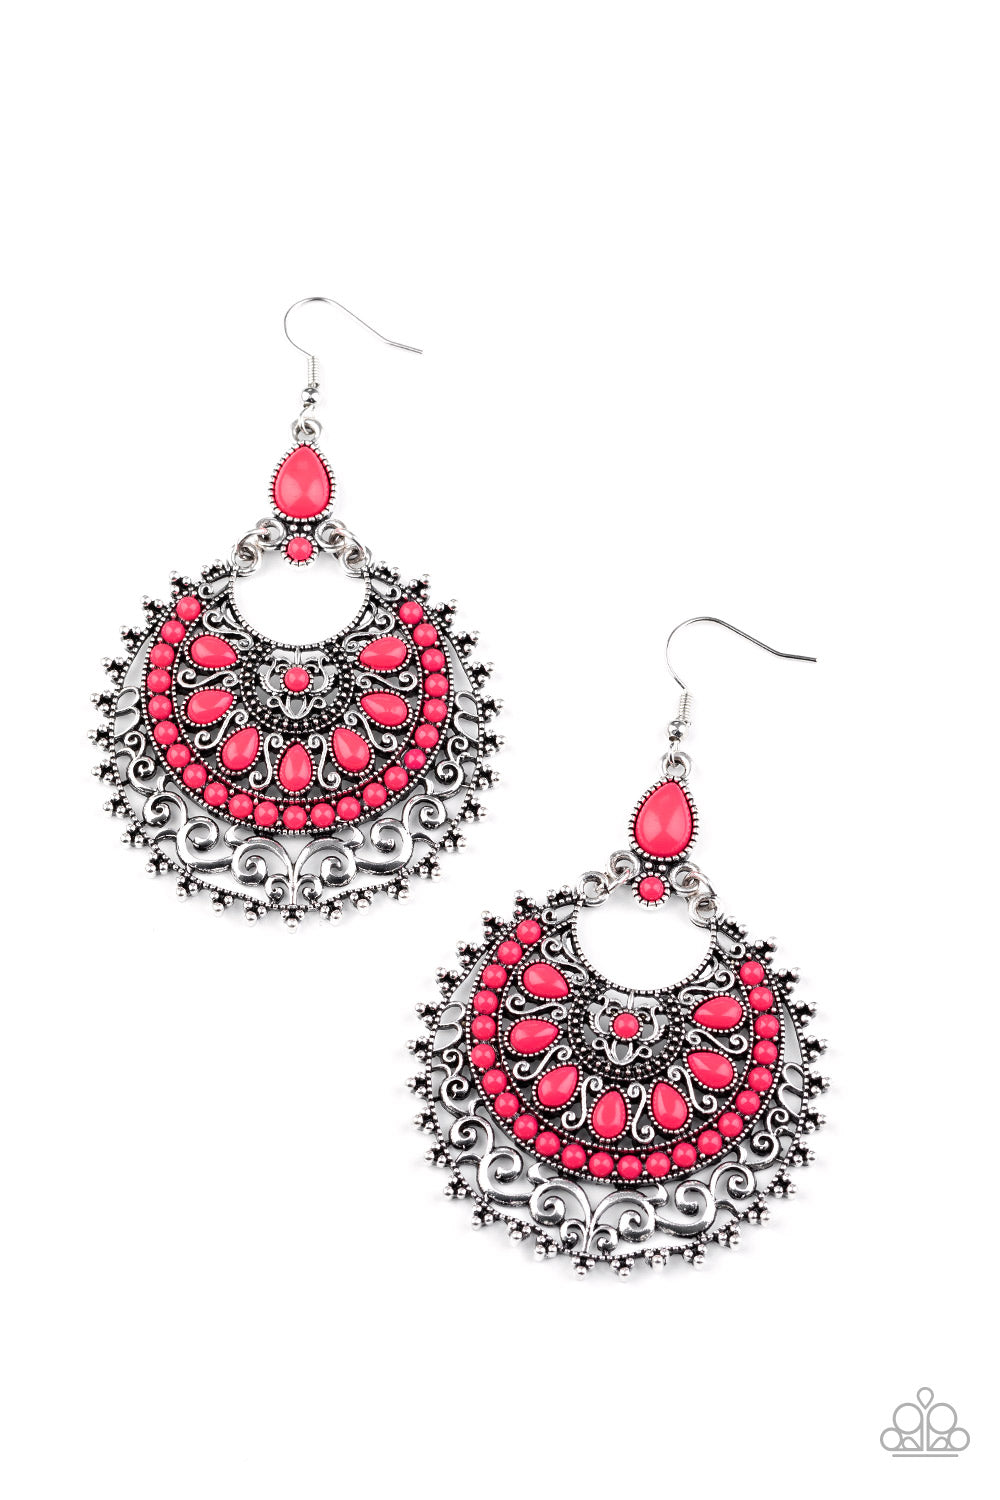 five-dollar-jewelry-laguna-leisure-pink-earrings-paparazzi-accessories